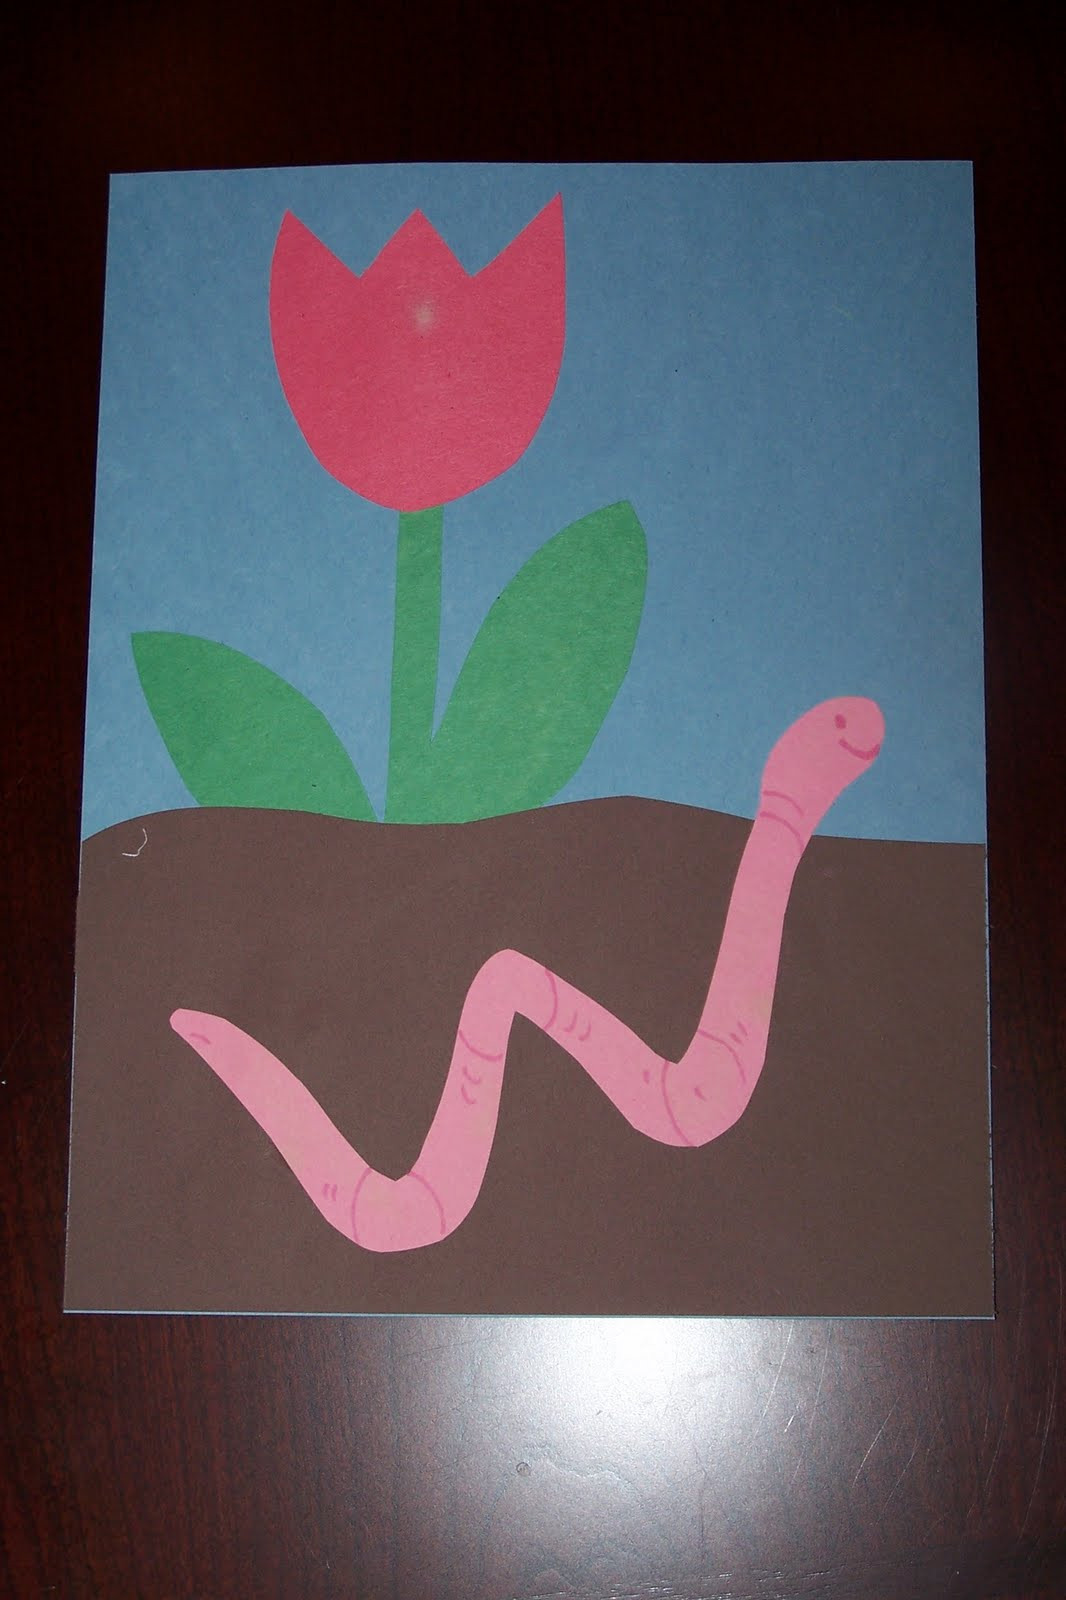 Best ideas about W Crafts For Preschoolers . Save or Pin The Princess and the Tot Letter Crafts Uppercase Now.